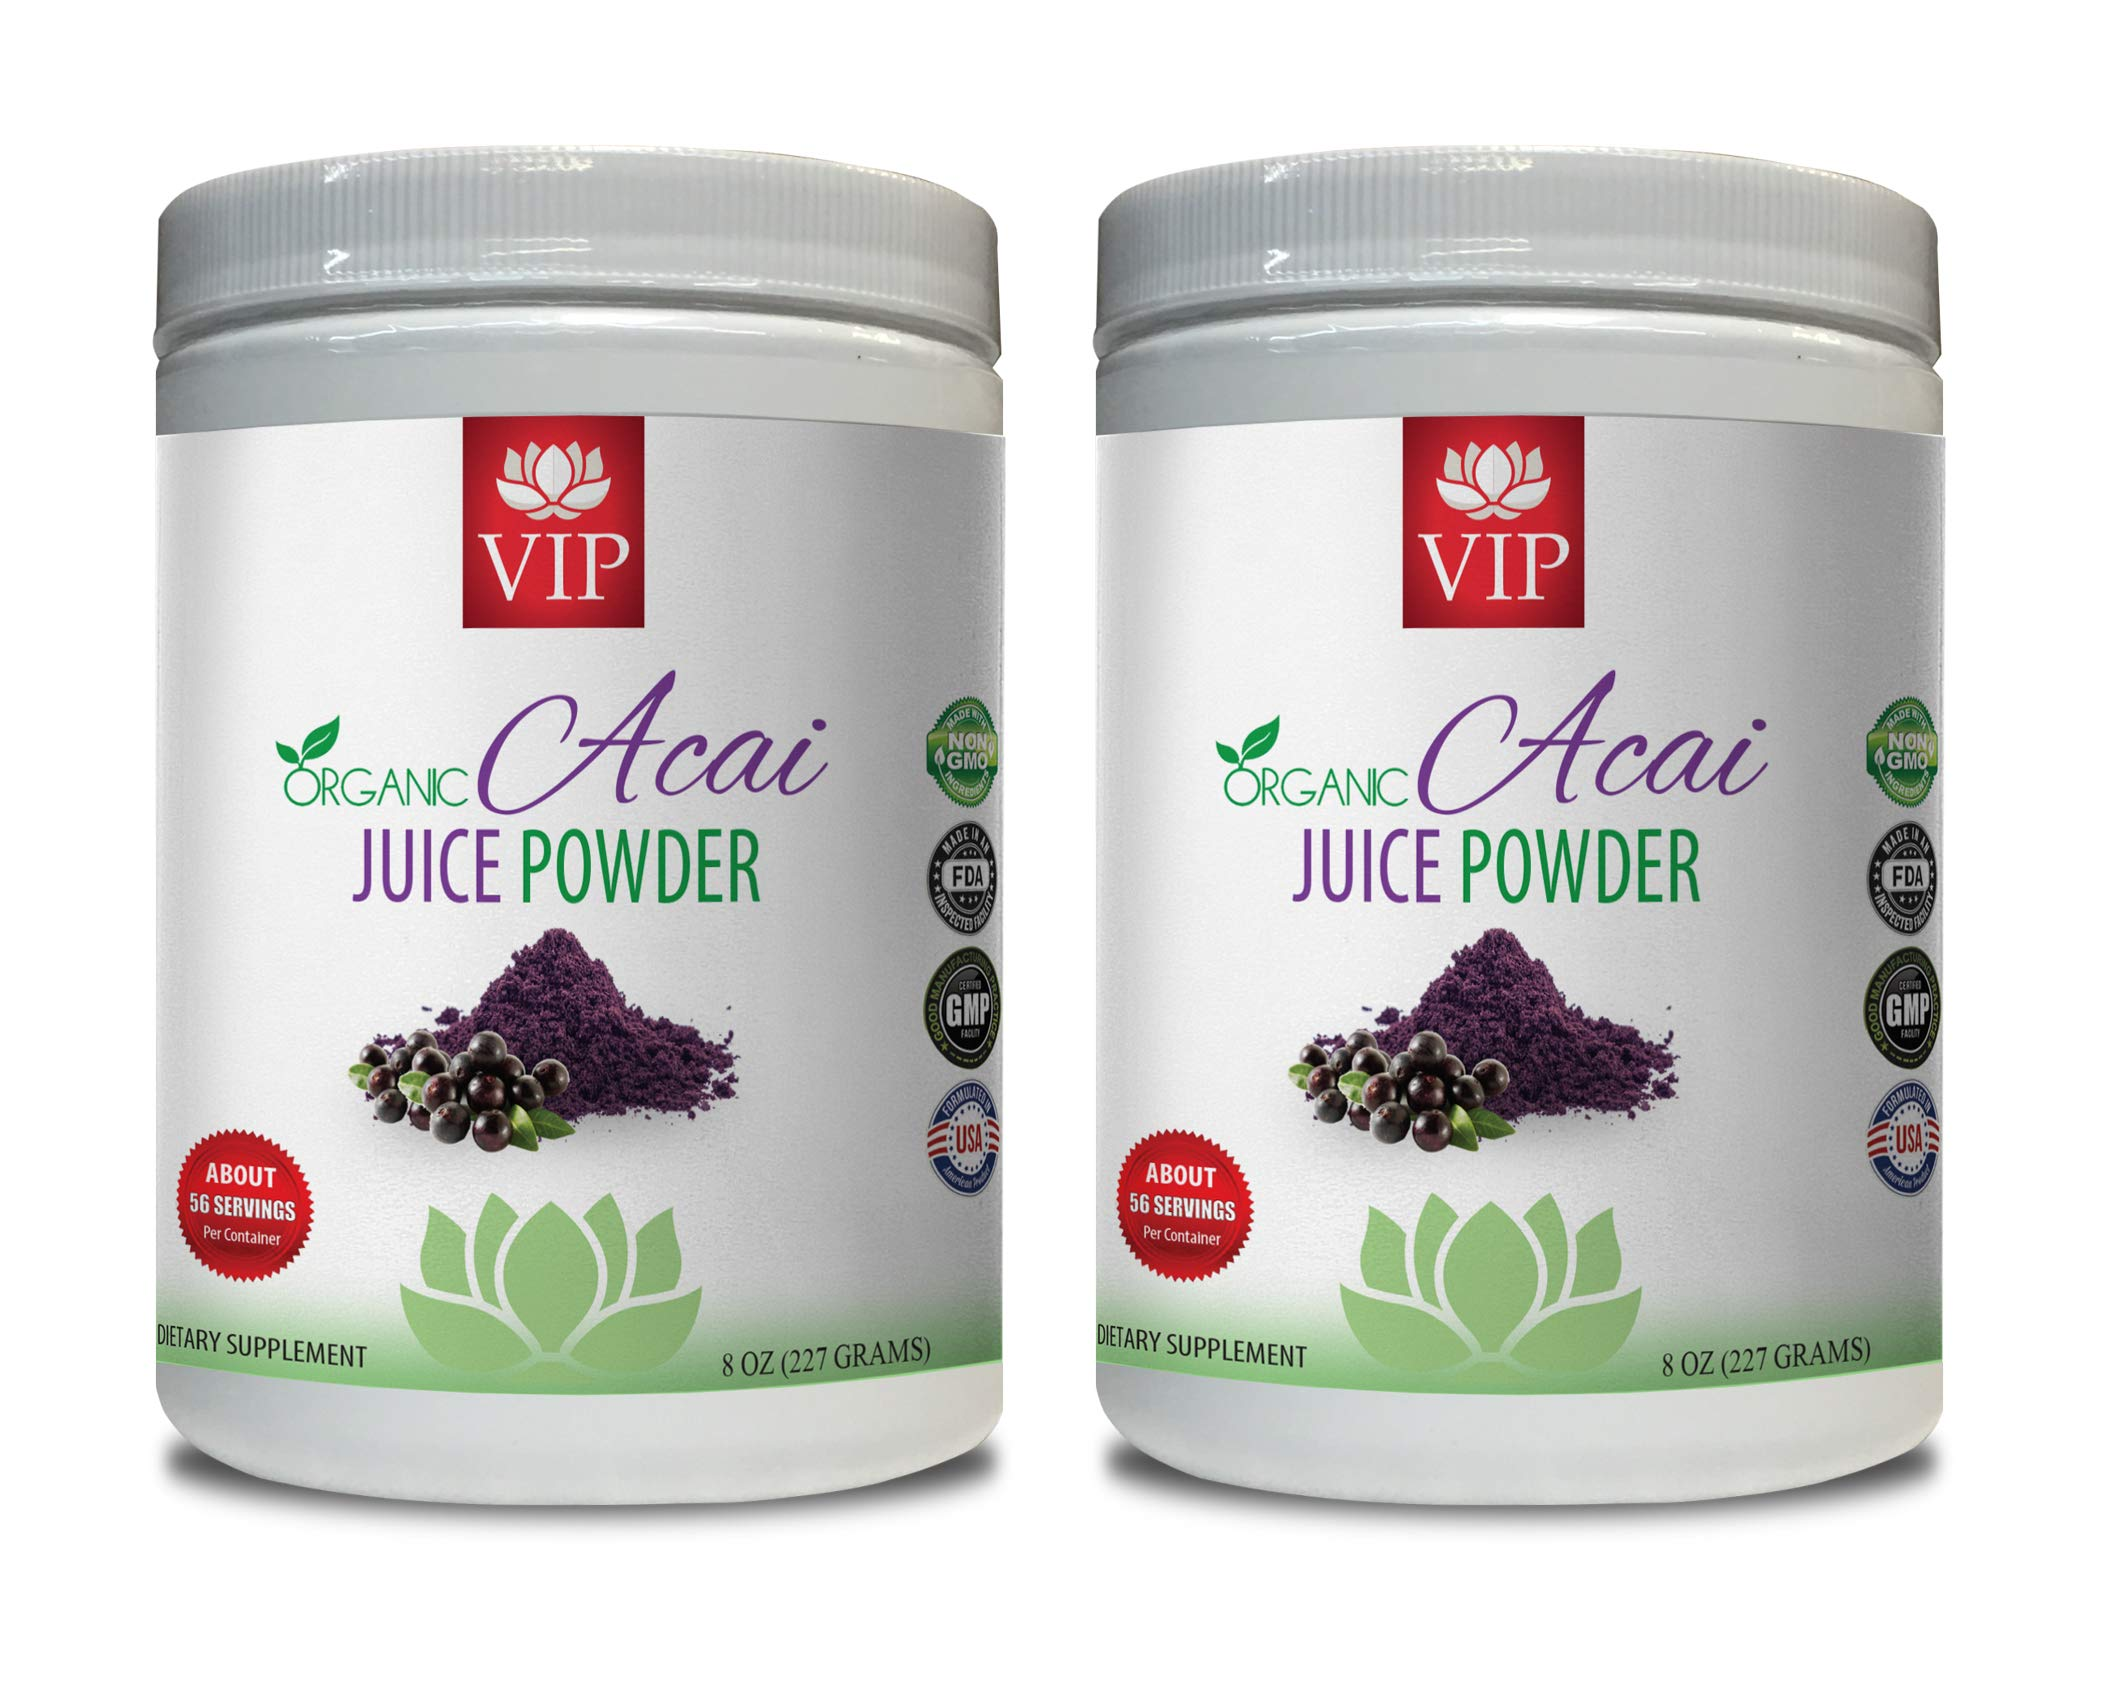 Energy Booster Powder - Organic ACAI Juice Powder - acai Fruit Powder - 2 Cans 16 OZ (130 Servings)